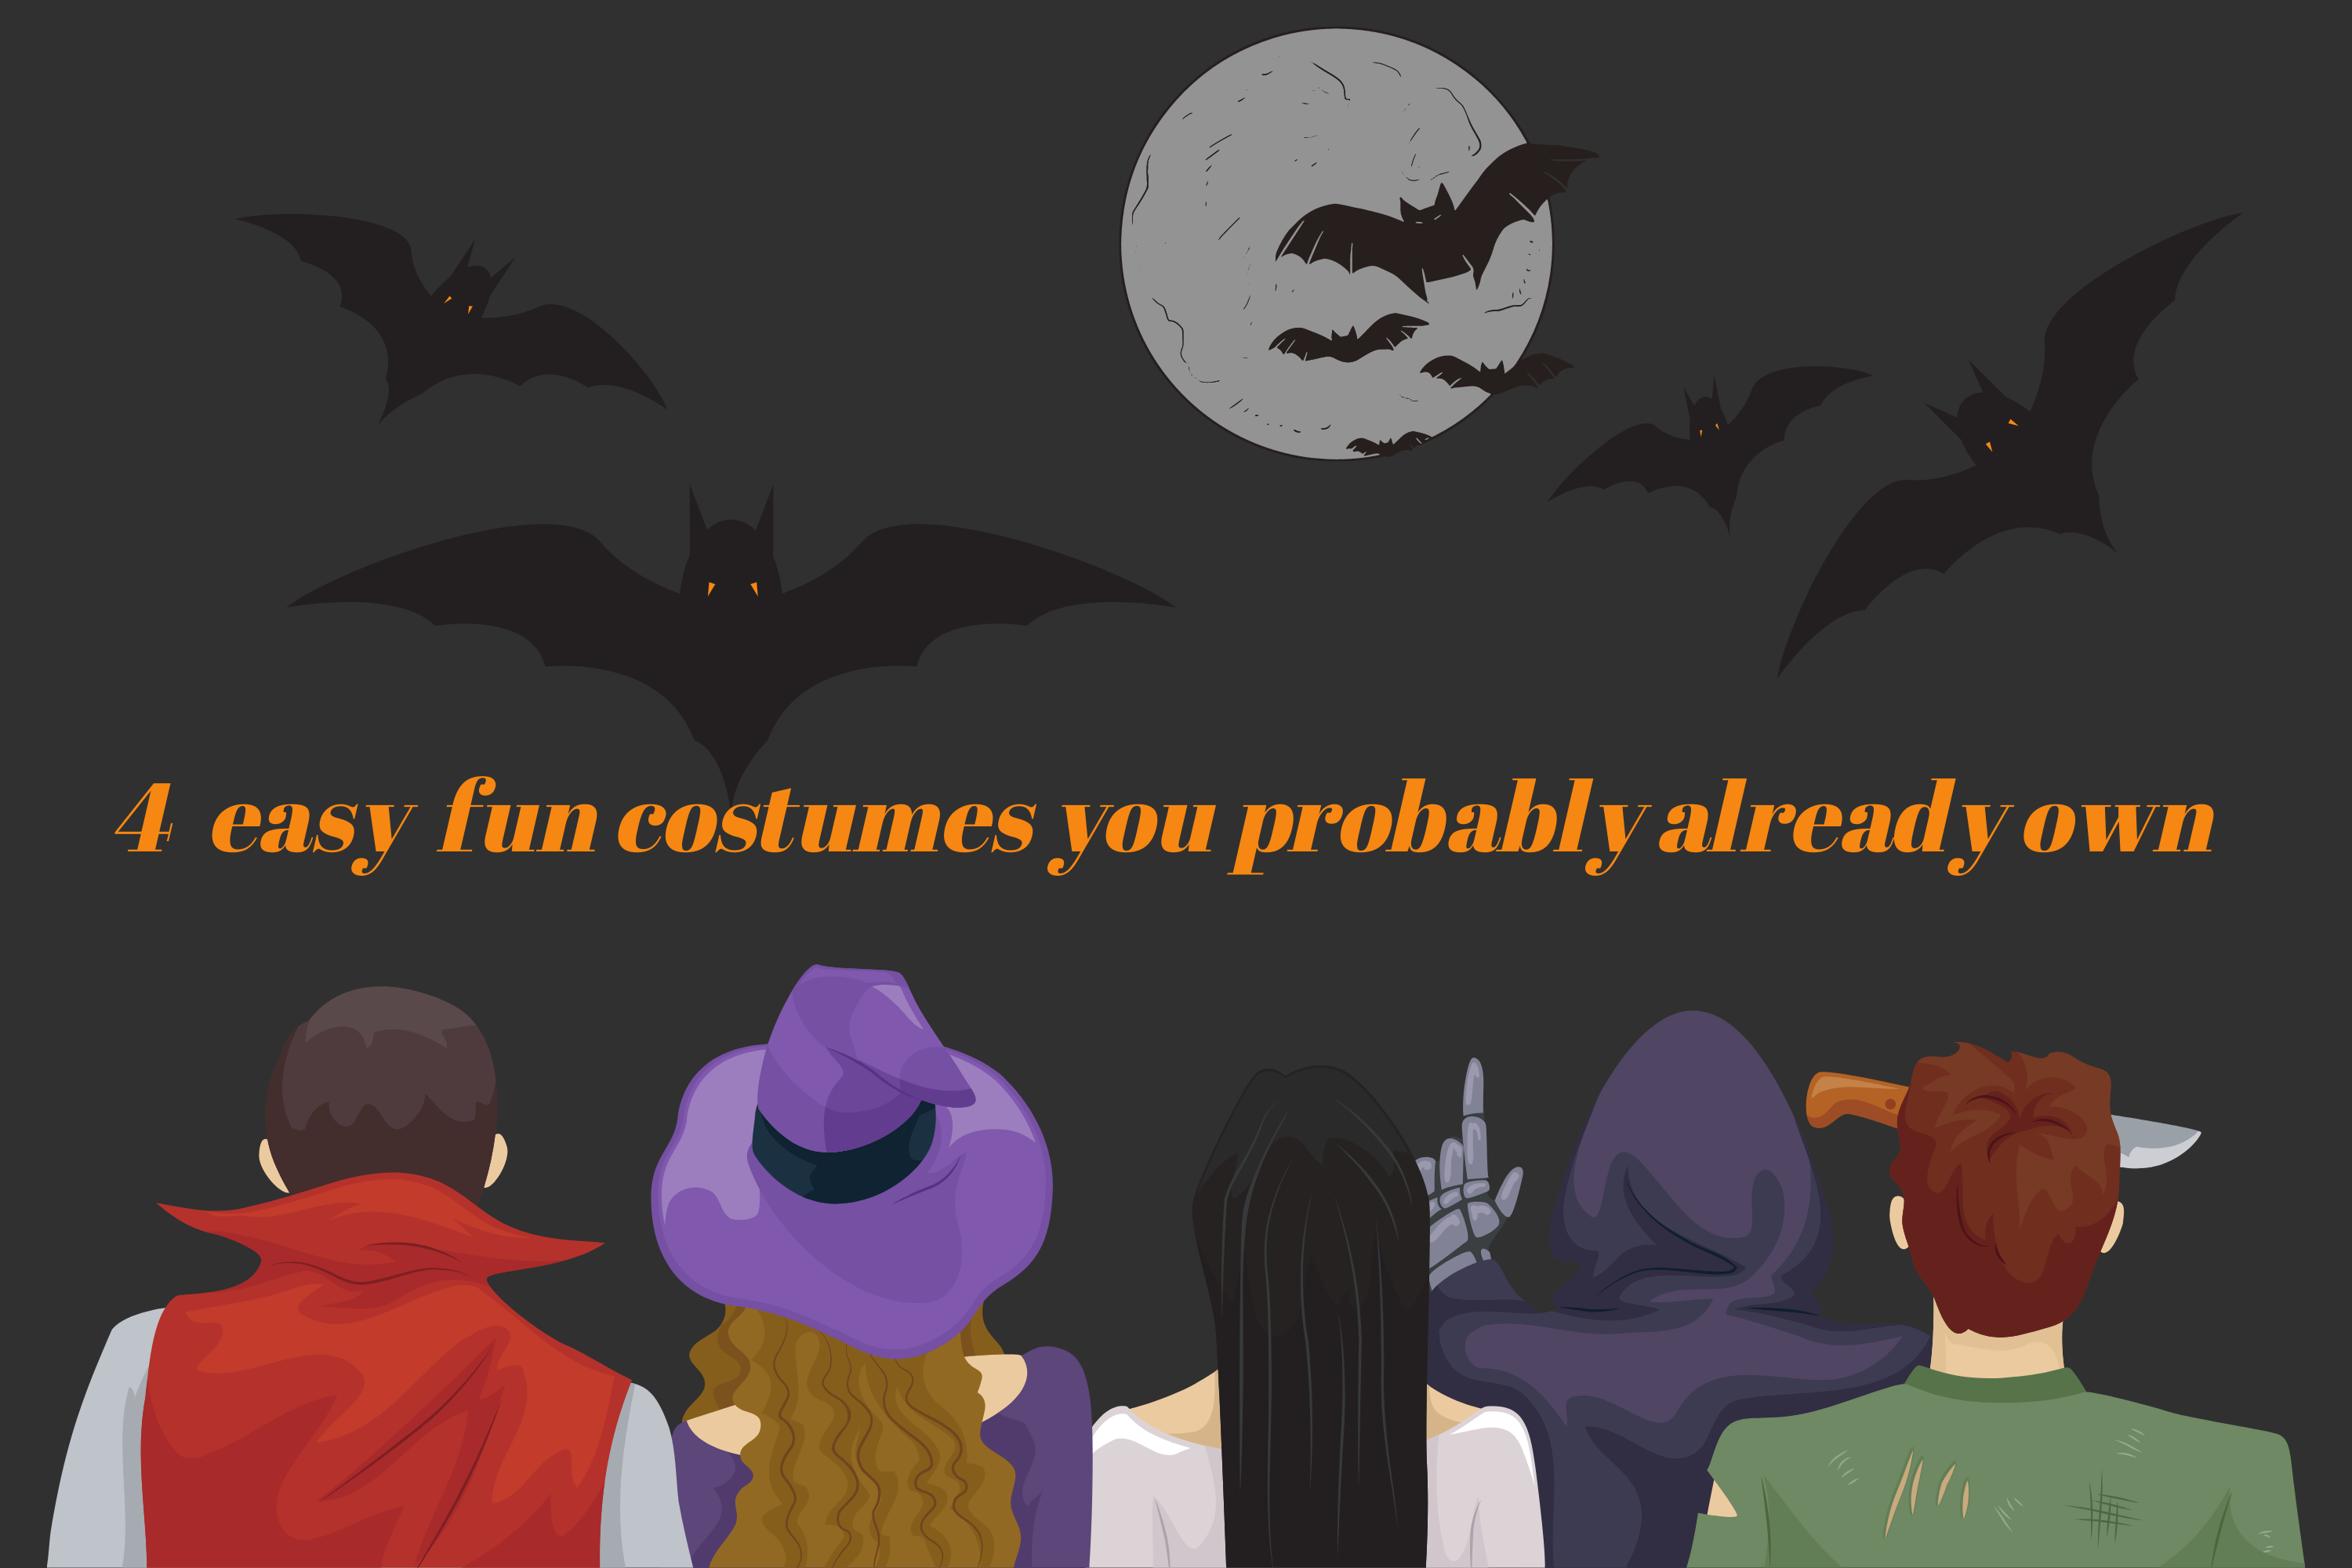 4 easy fun costumes you probably already own-2